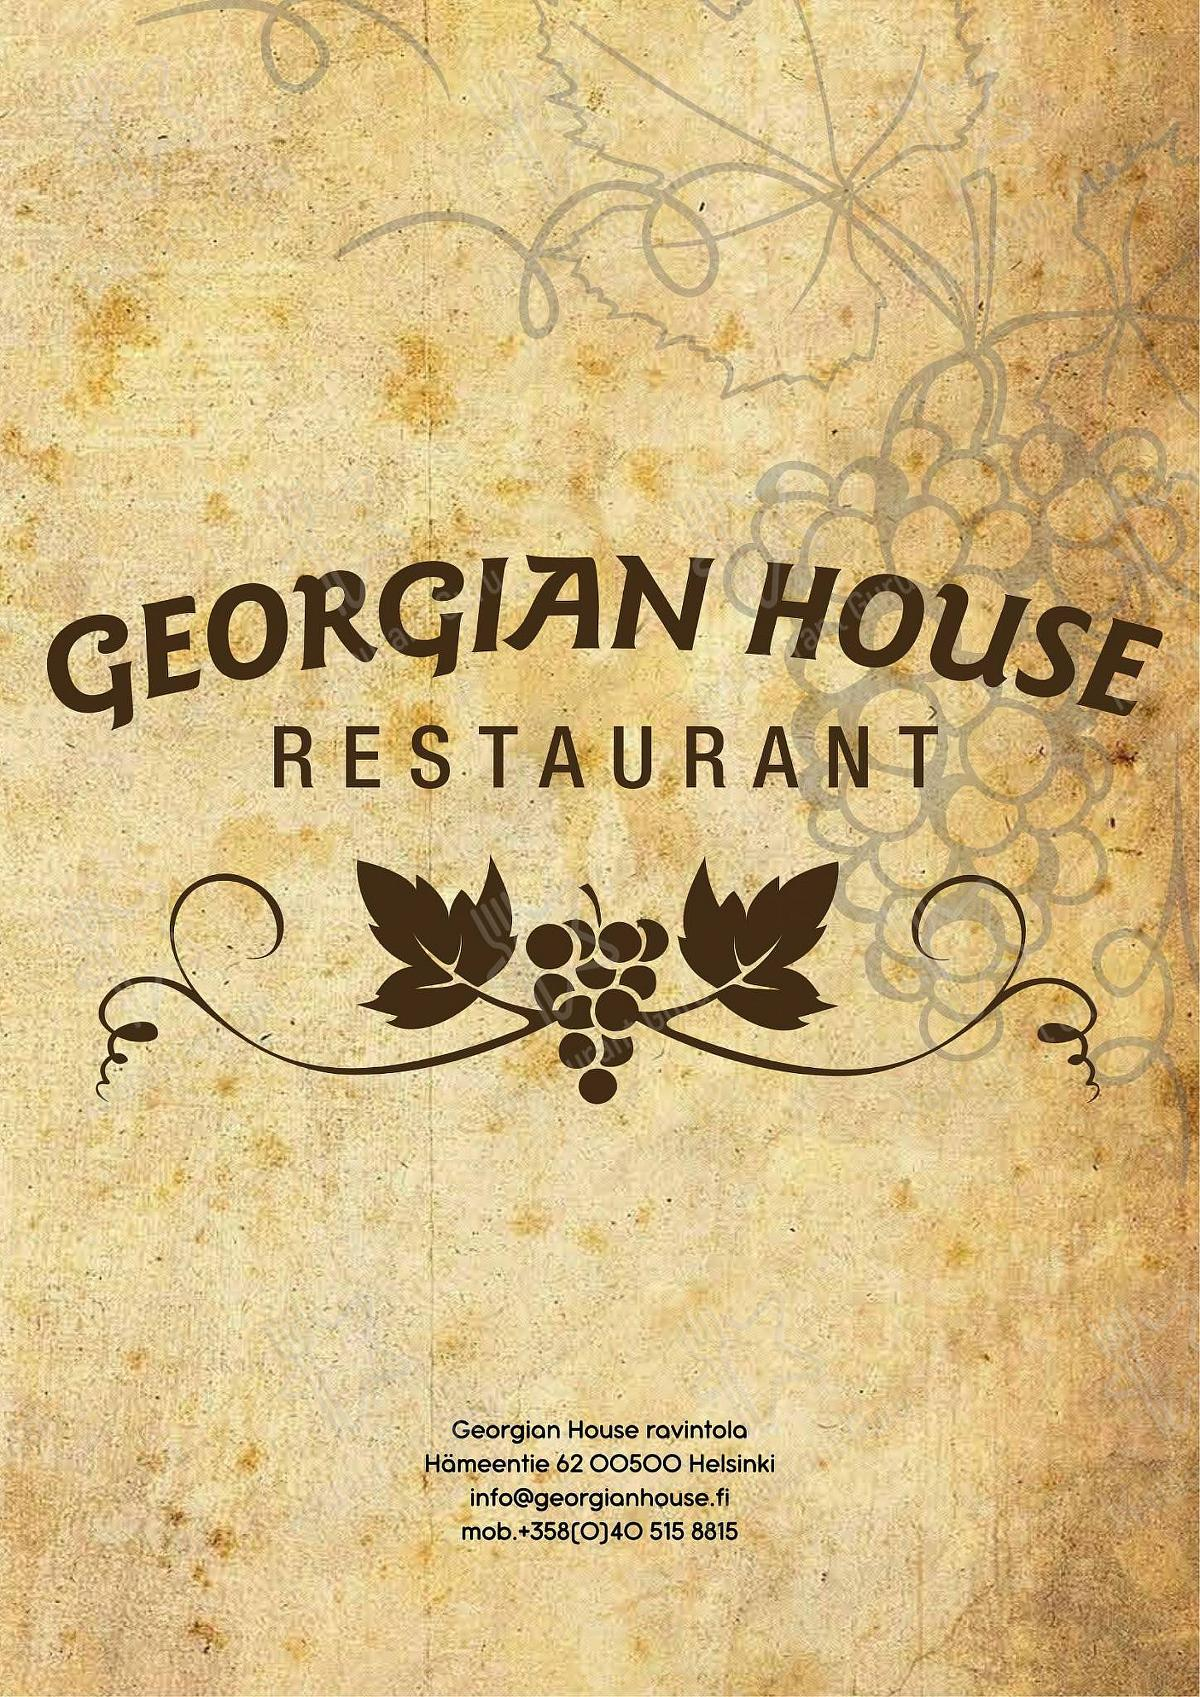 Georgian House menu - dishes and beverages